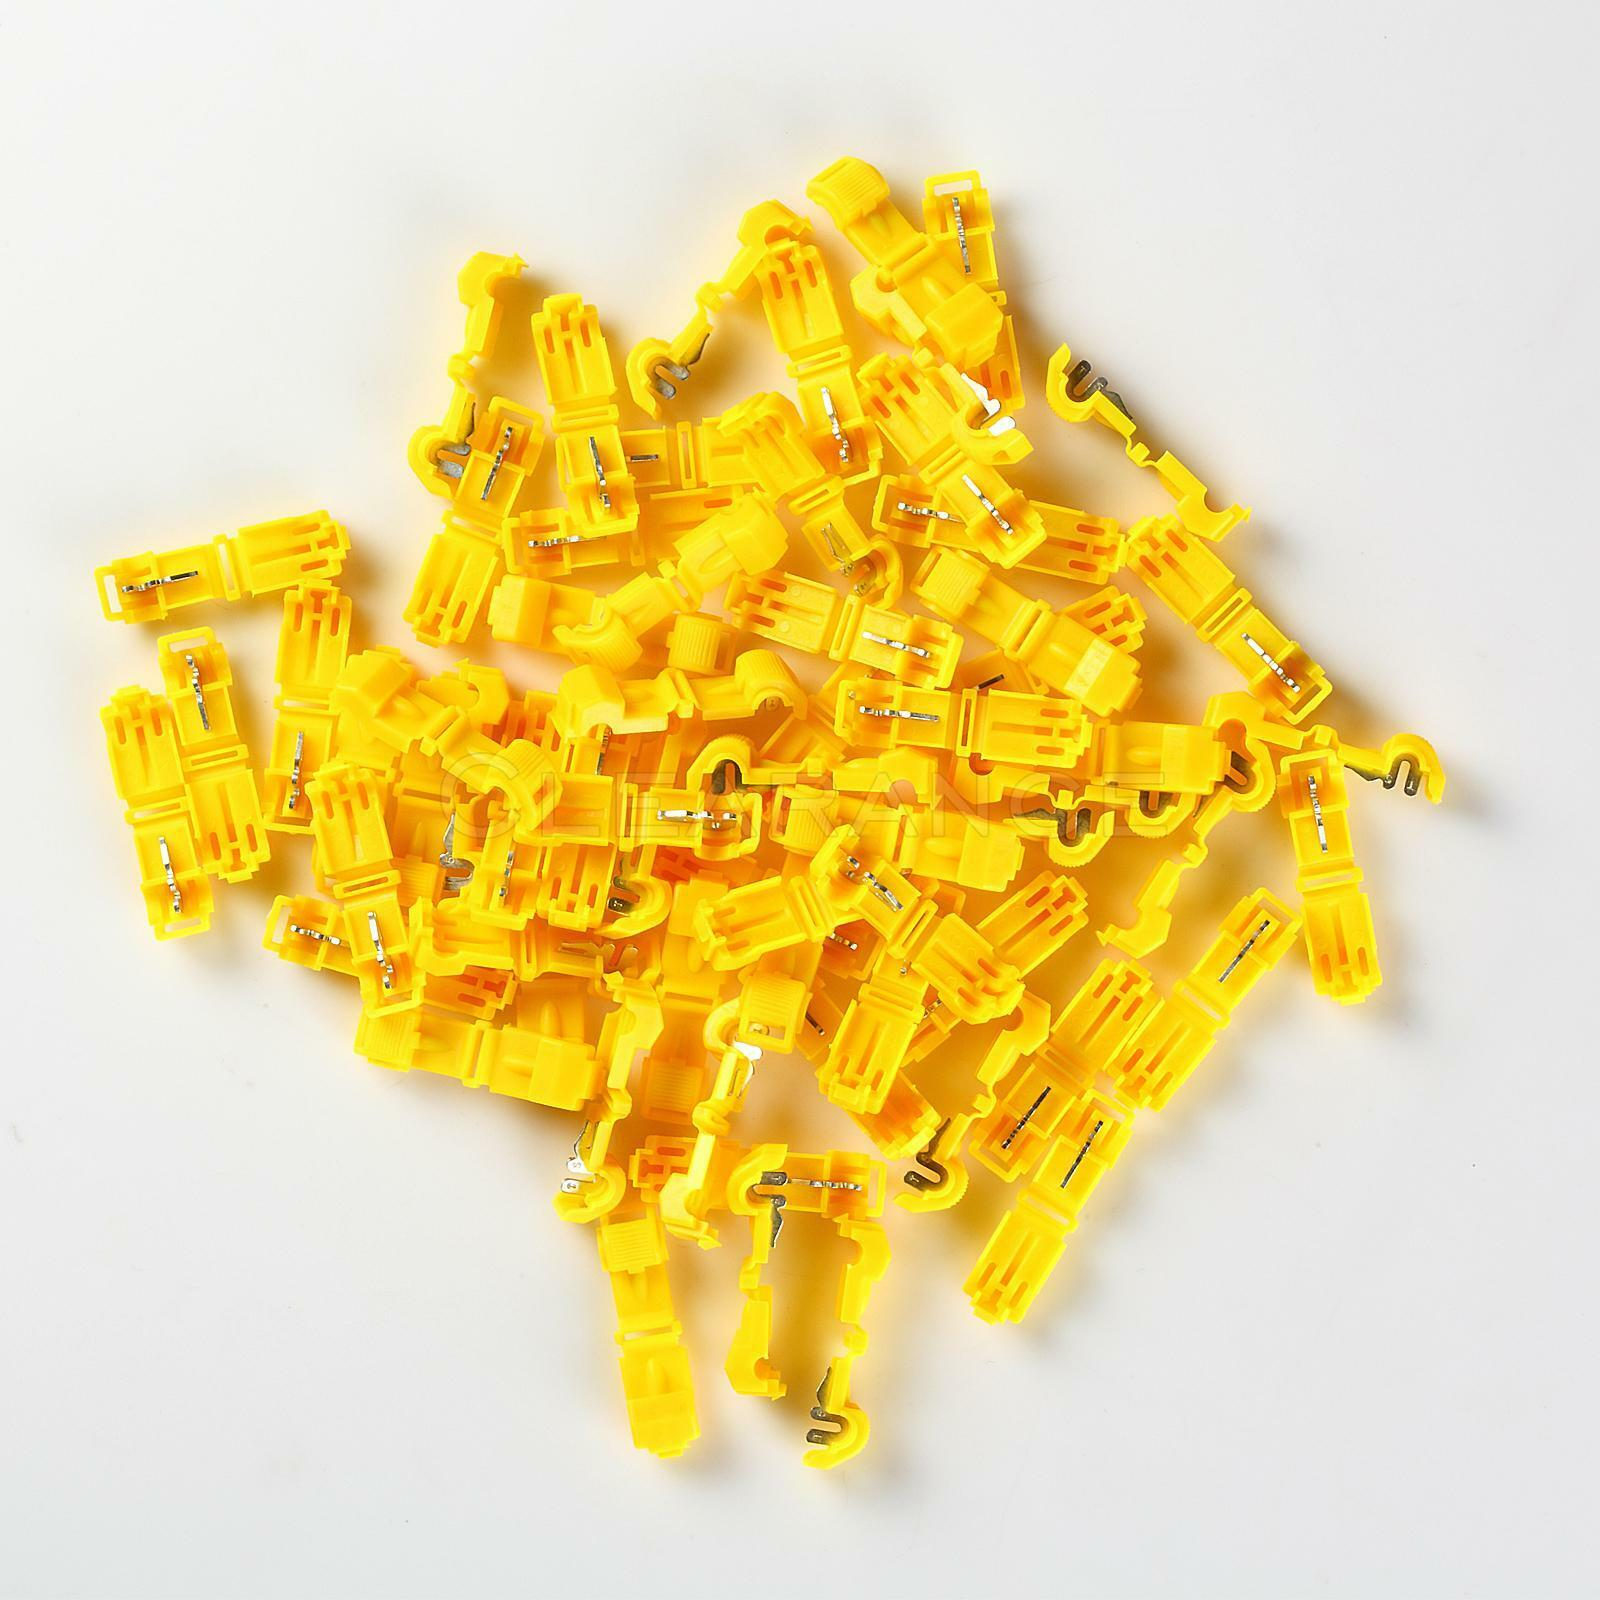 T Tap Quick Wire Connectors Yellow 12 10 Awg Gauge Car Audio Wiring 1 Of 3only 4 Available